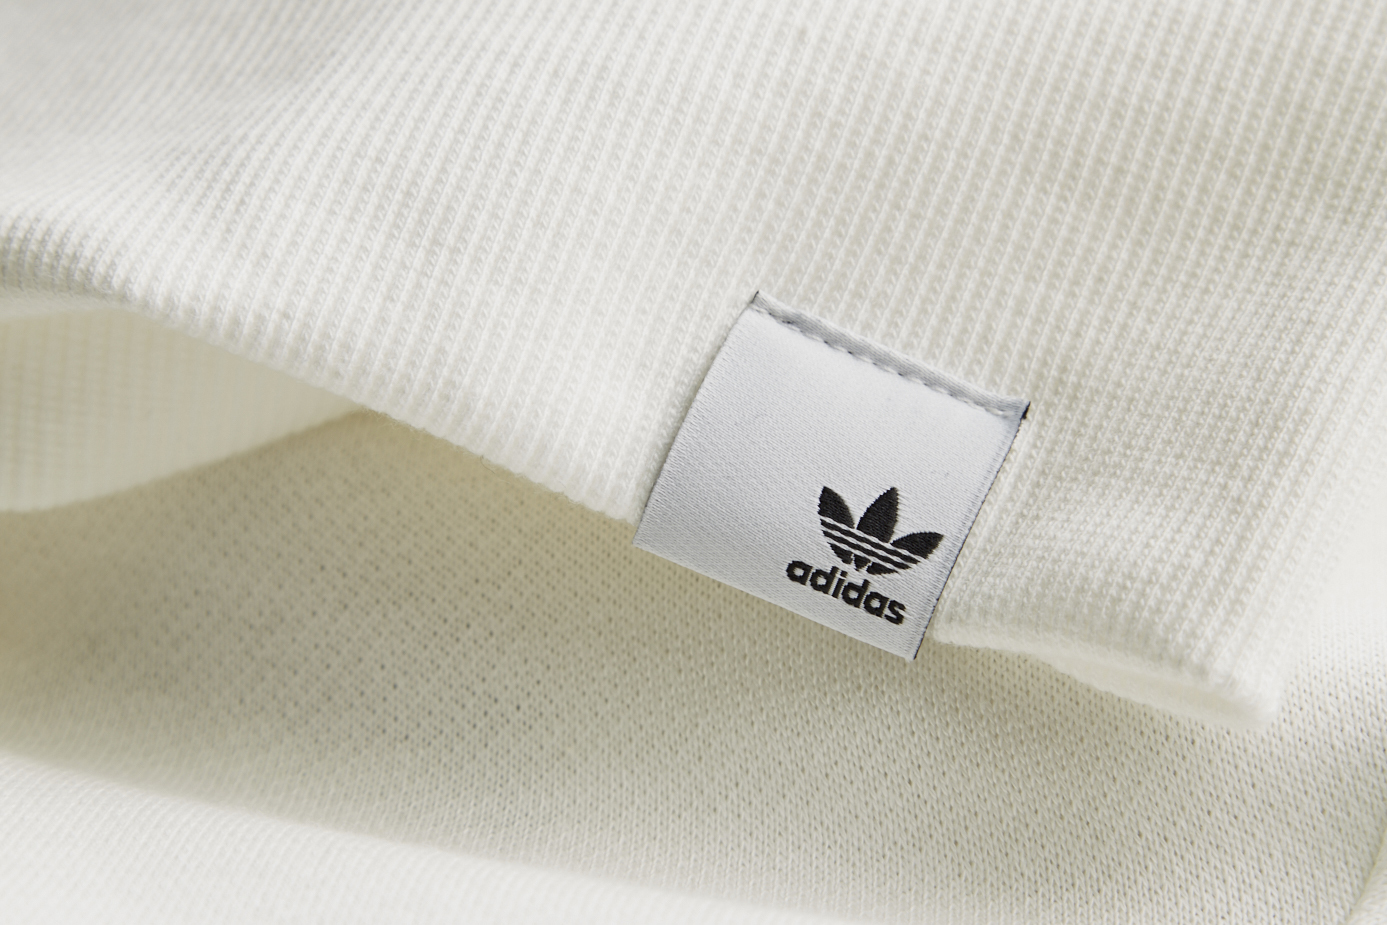 Latest adidas Originals Selection at size?